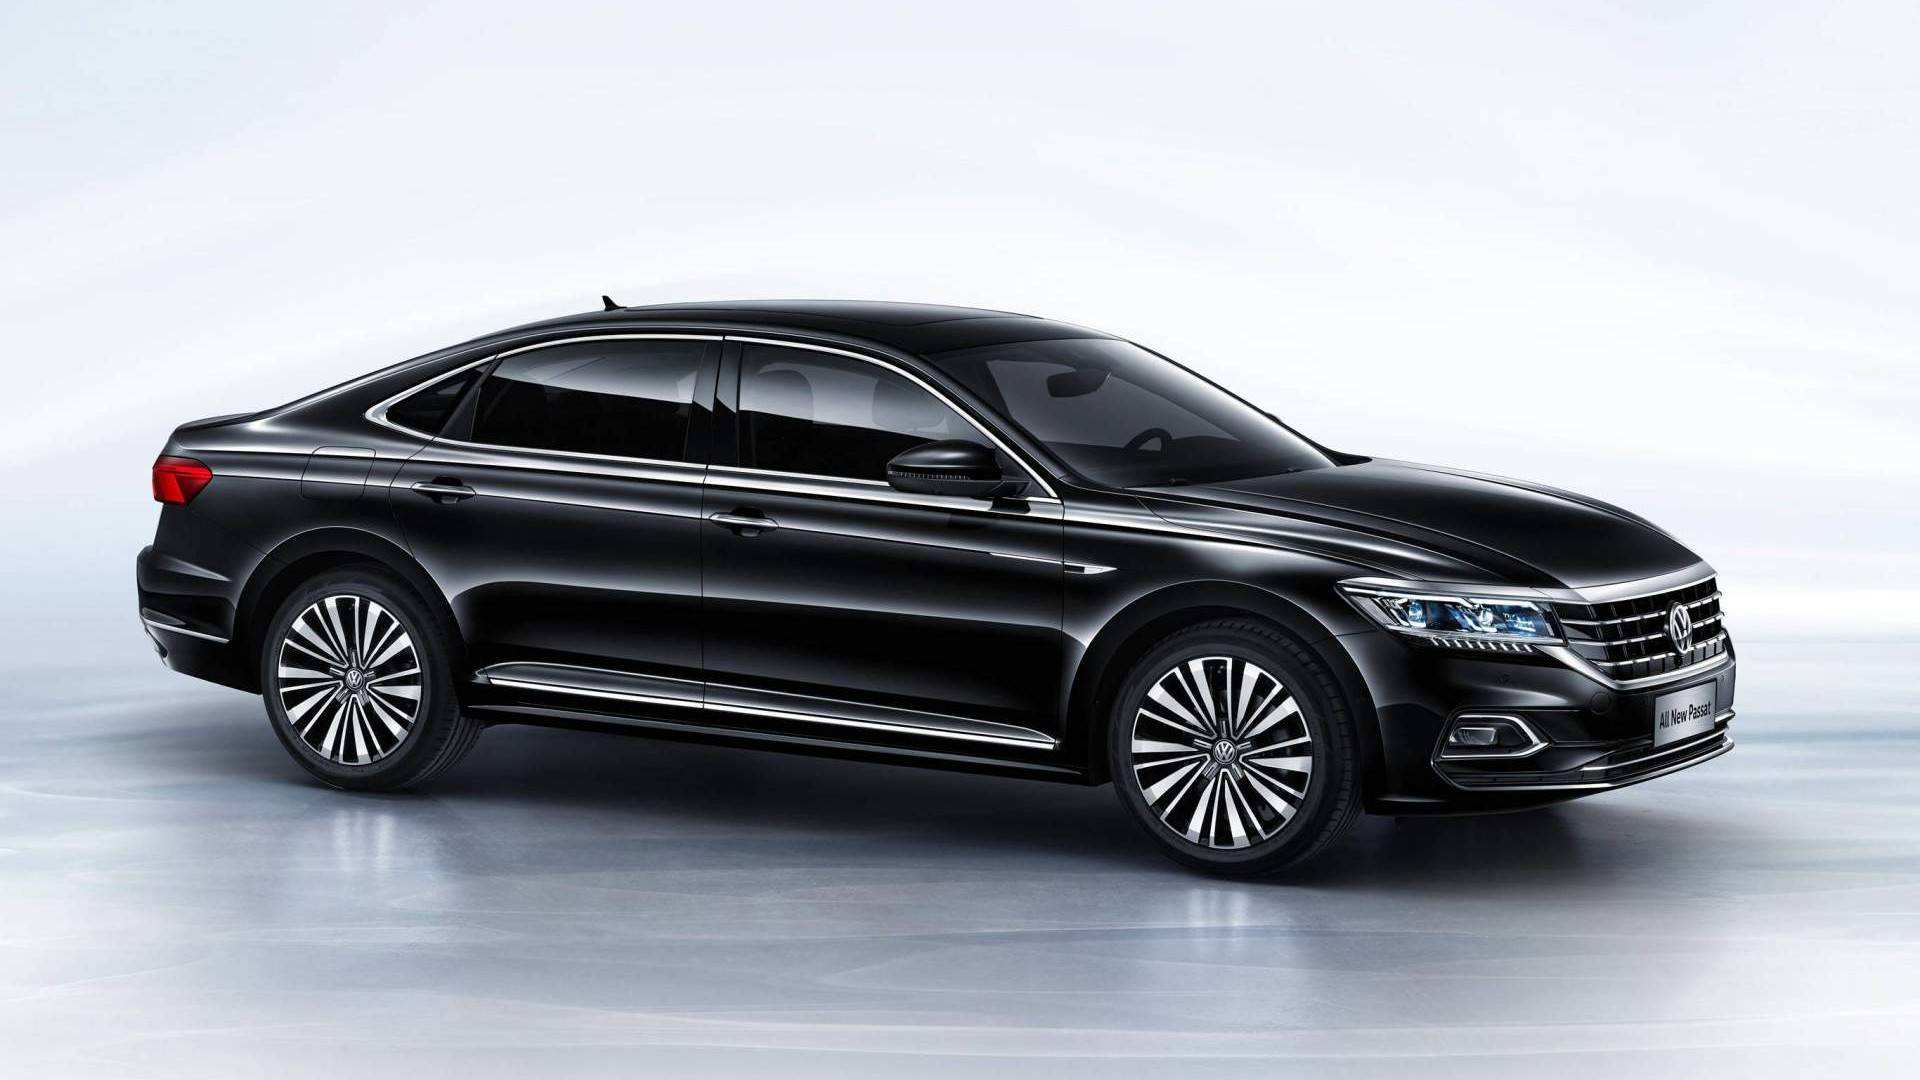 96 All New 2019 Volkswagen CC Images